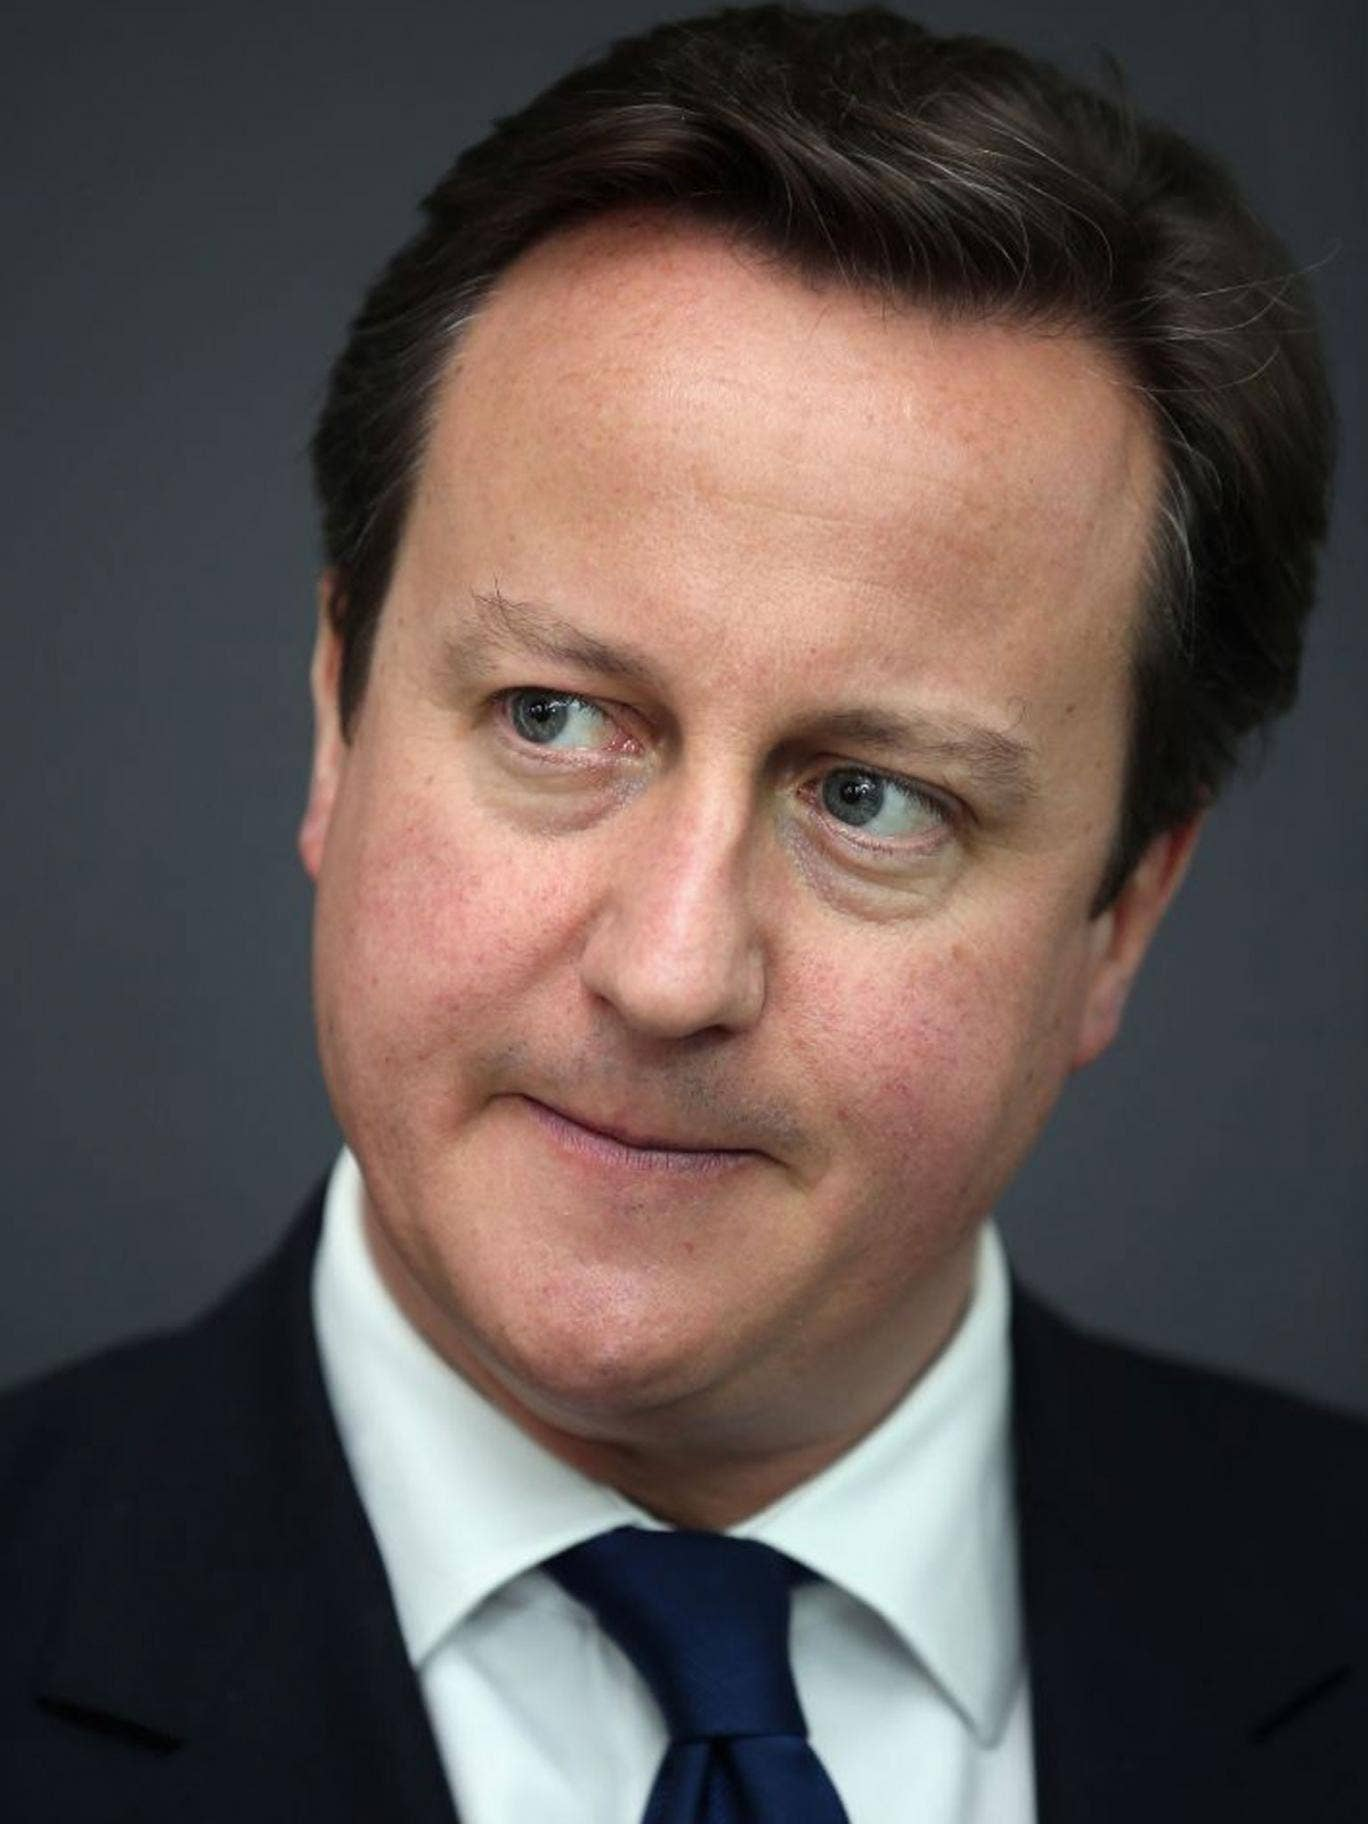 David Cameron scored dismally in a poll among party activists